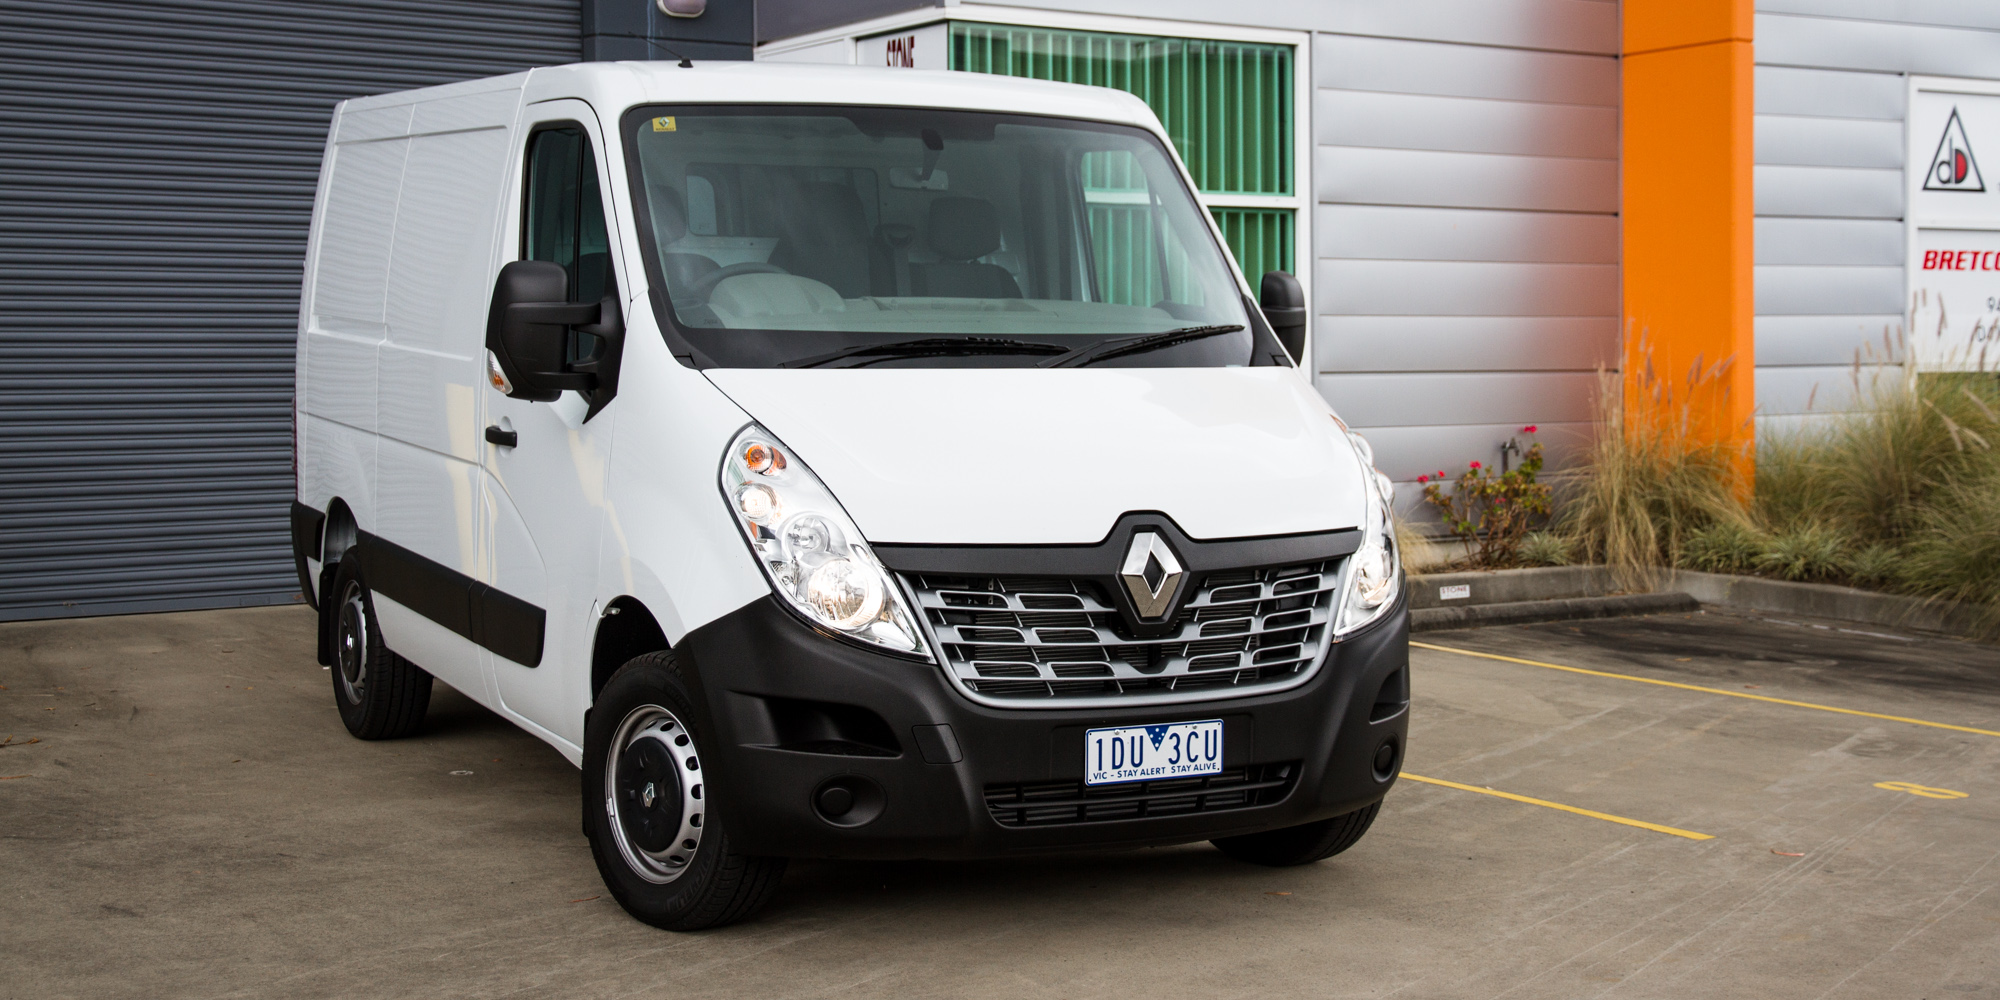 2015 renault master l1h1 review photos caradvice. Black Bedroom Furniture Sets. Home Design Ideas